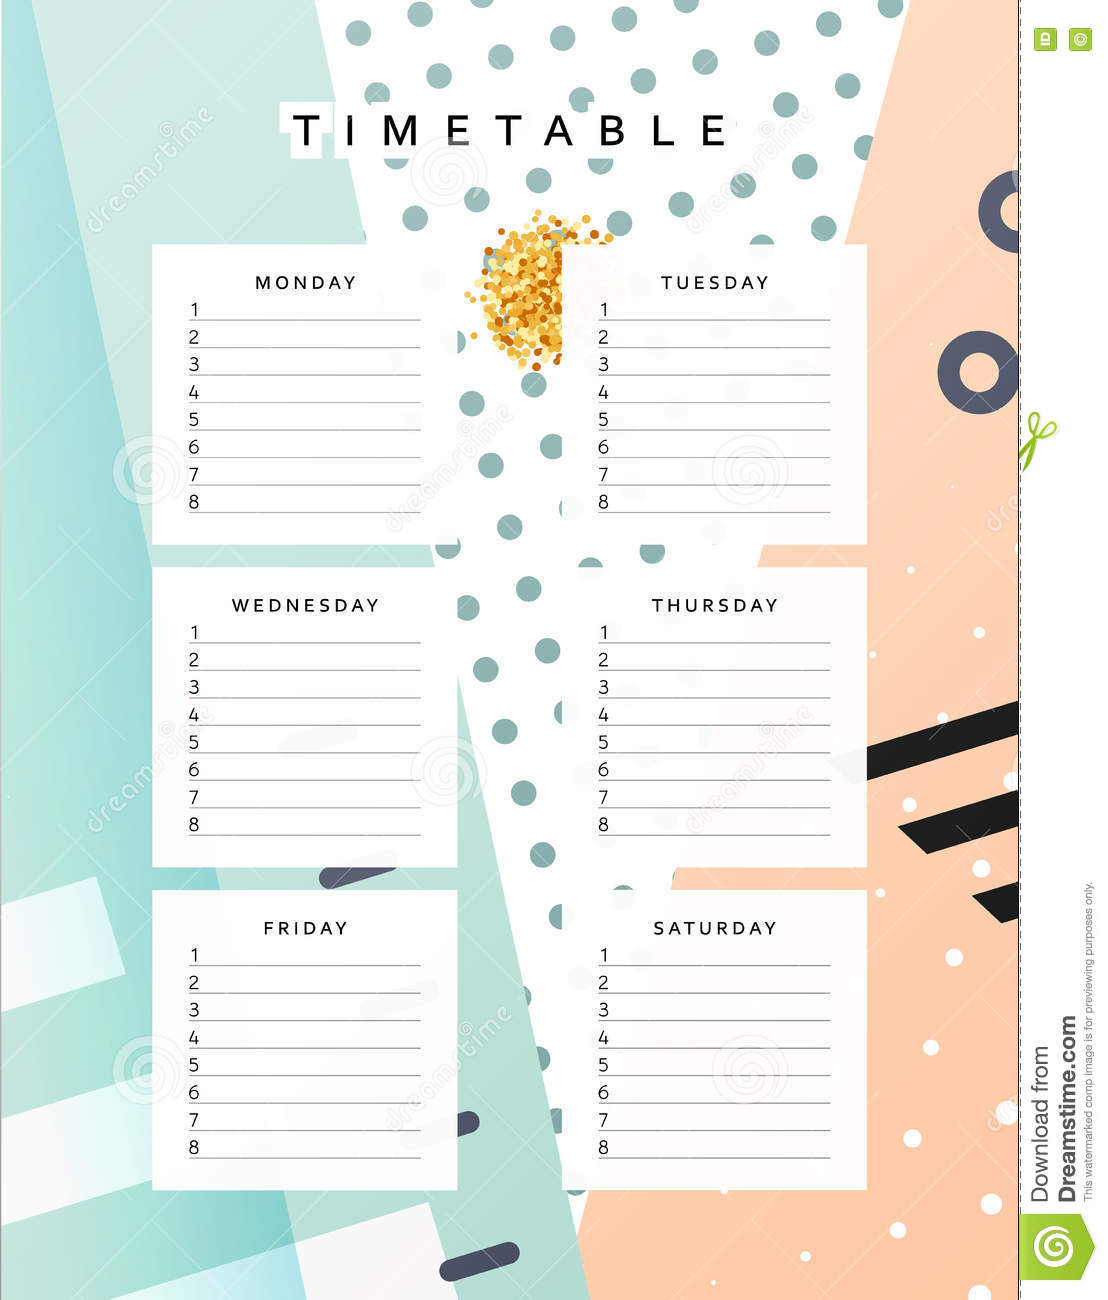 planner calendar schedule the week abstract design background holiday date